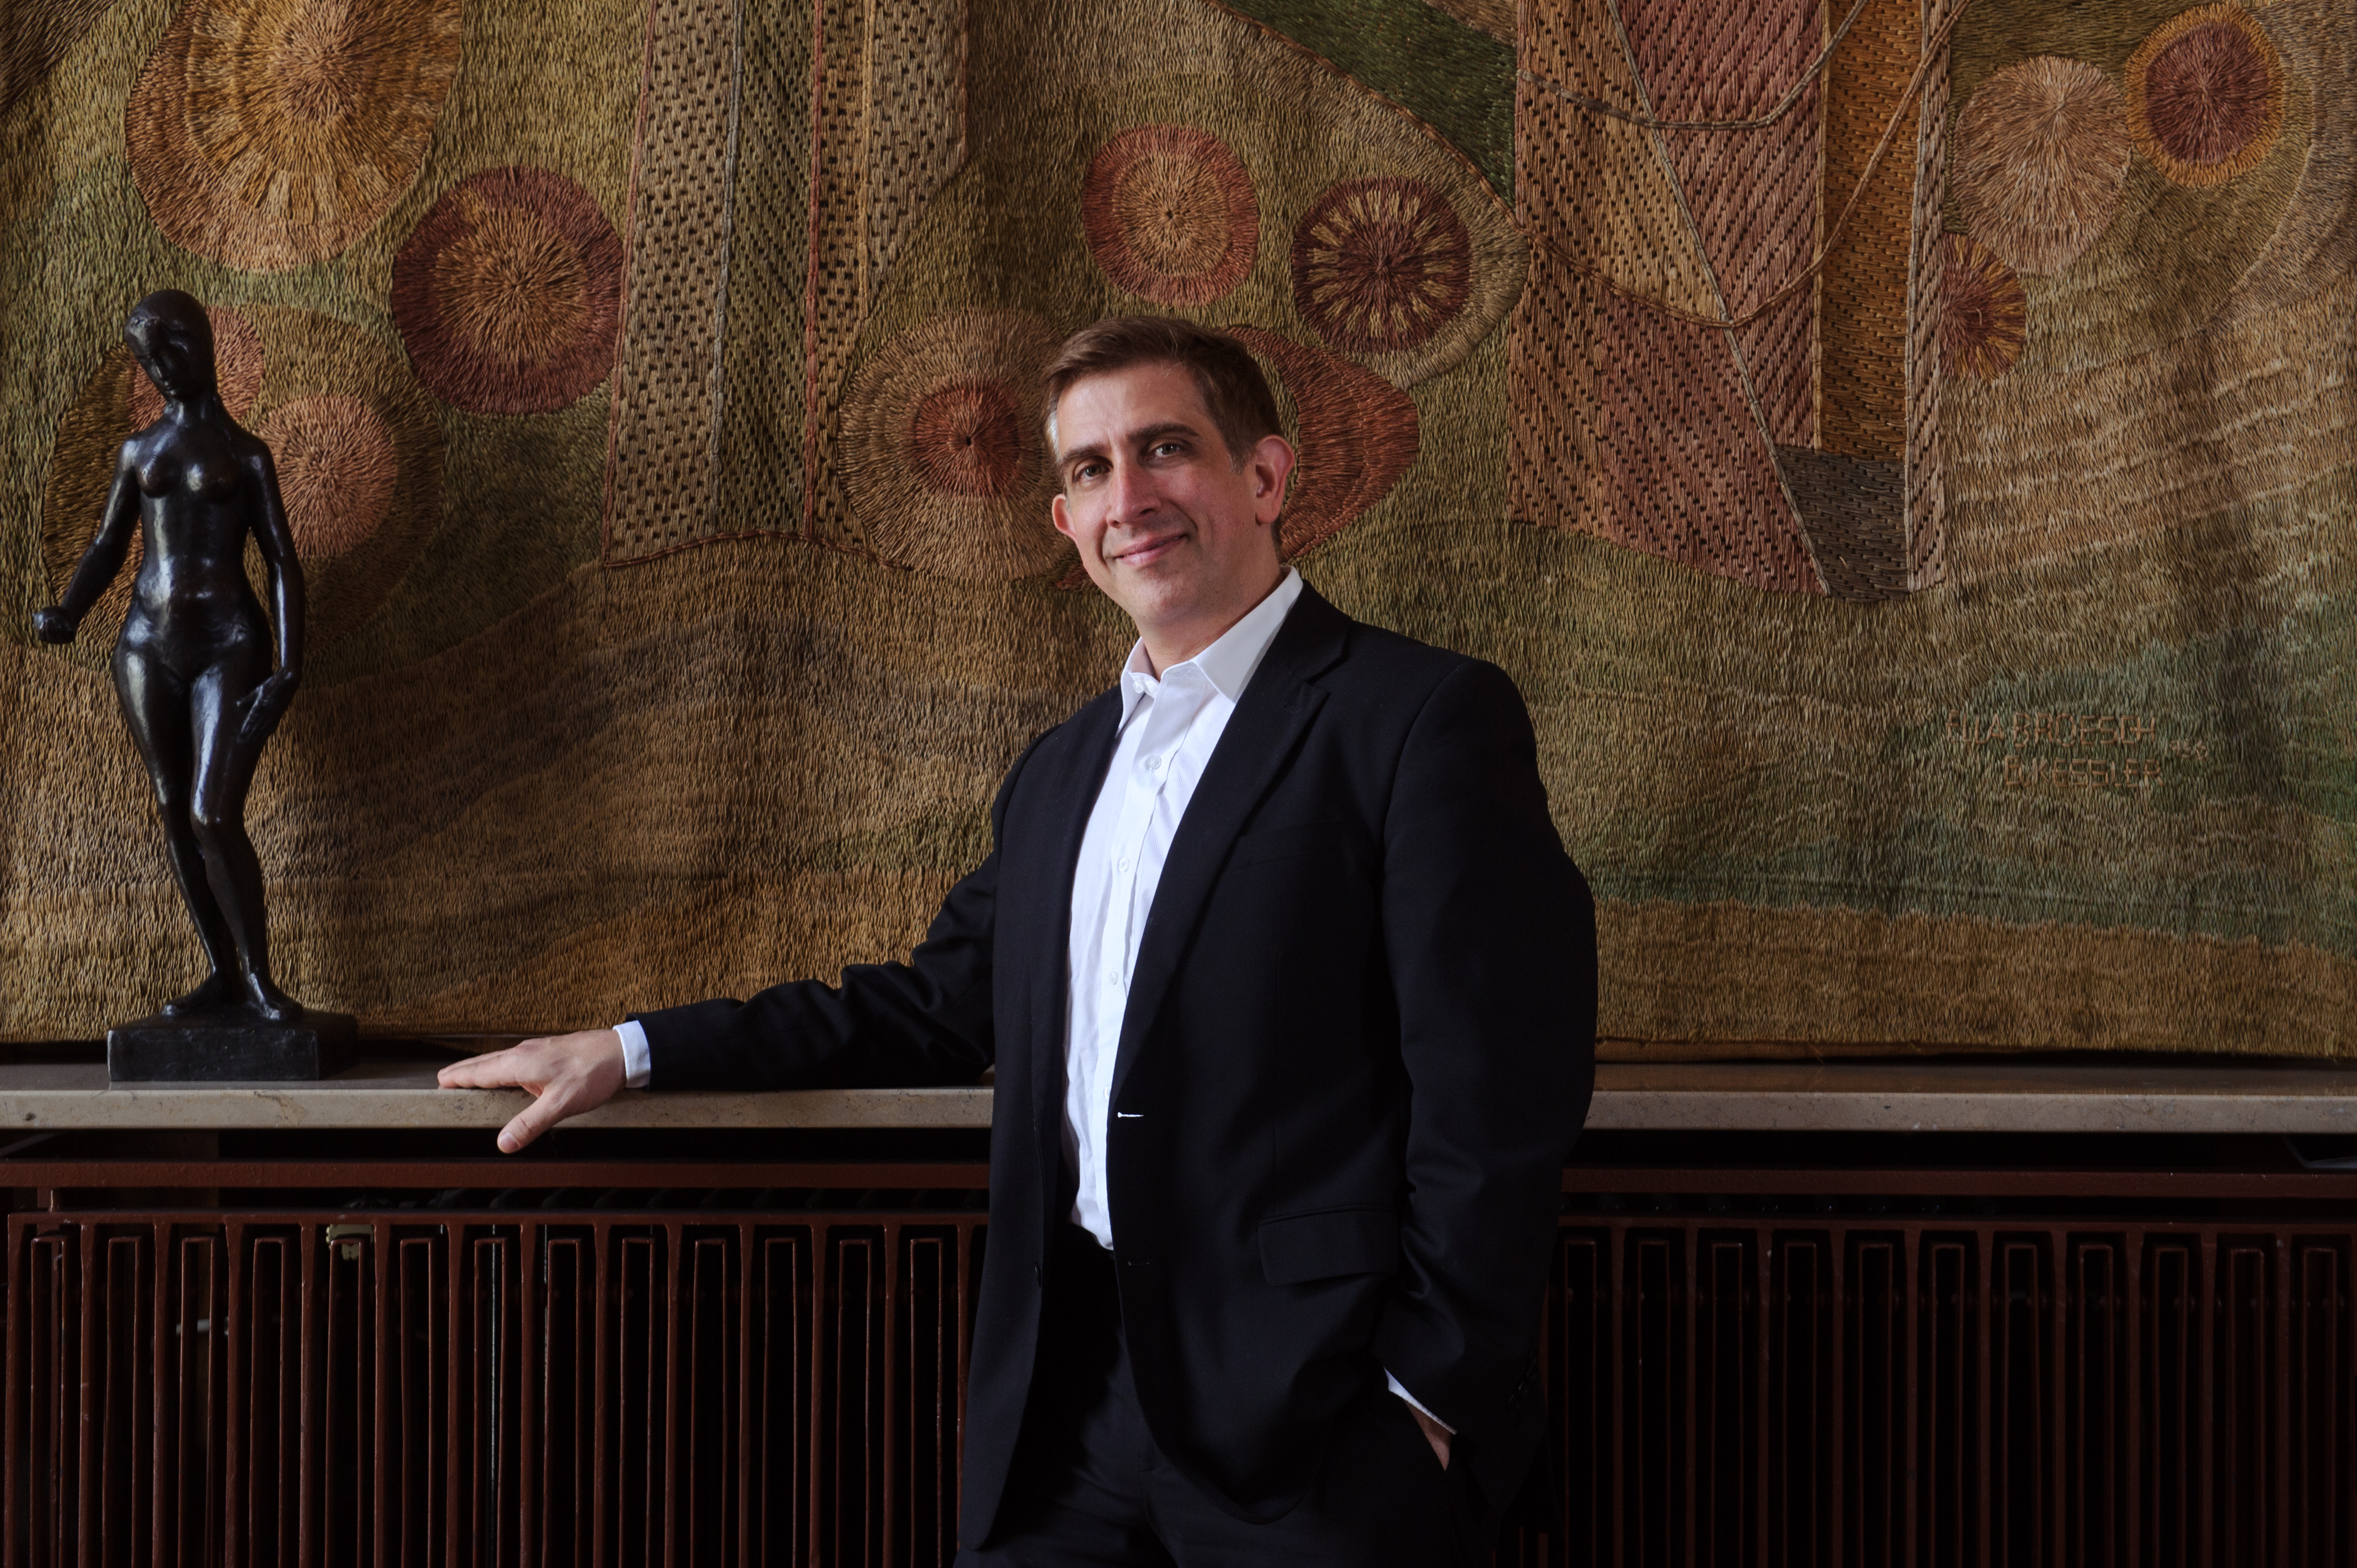 Chief Conductor & Artistic Director | Canberra Symphony